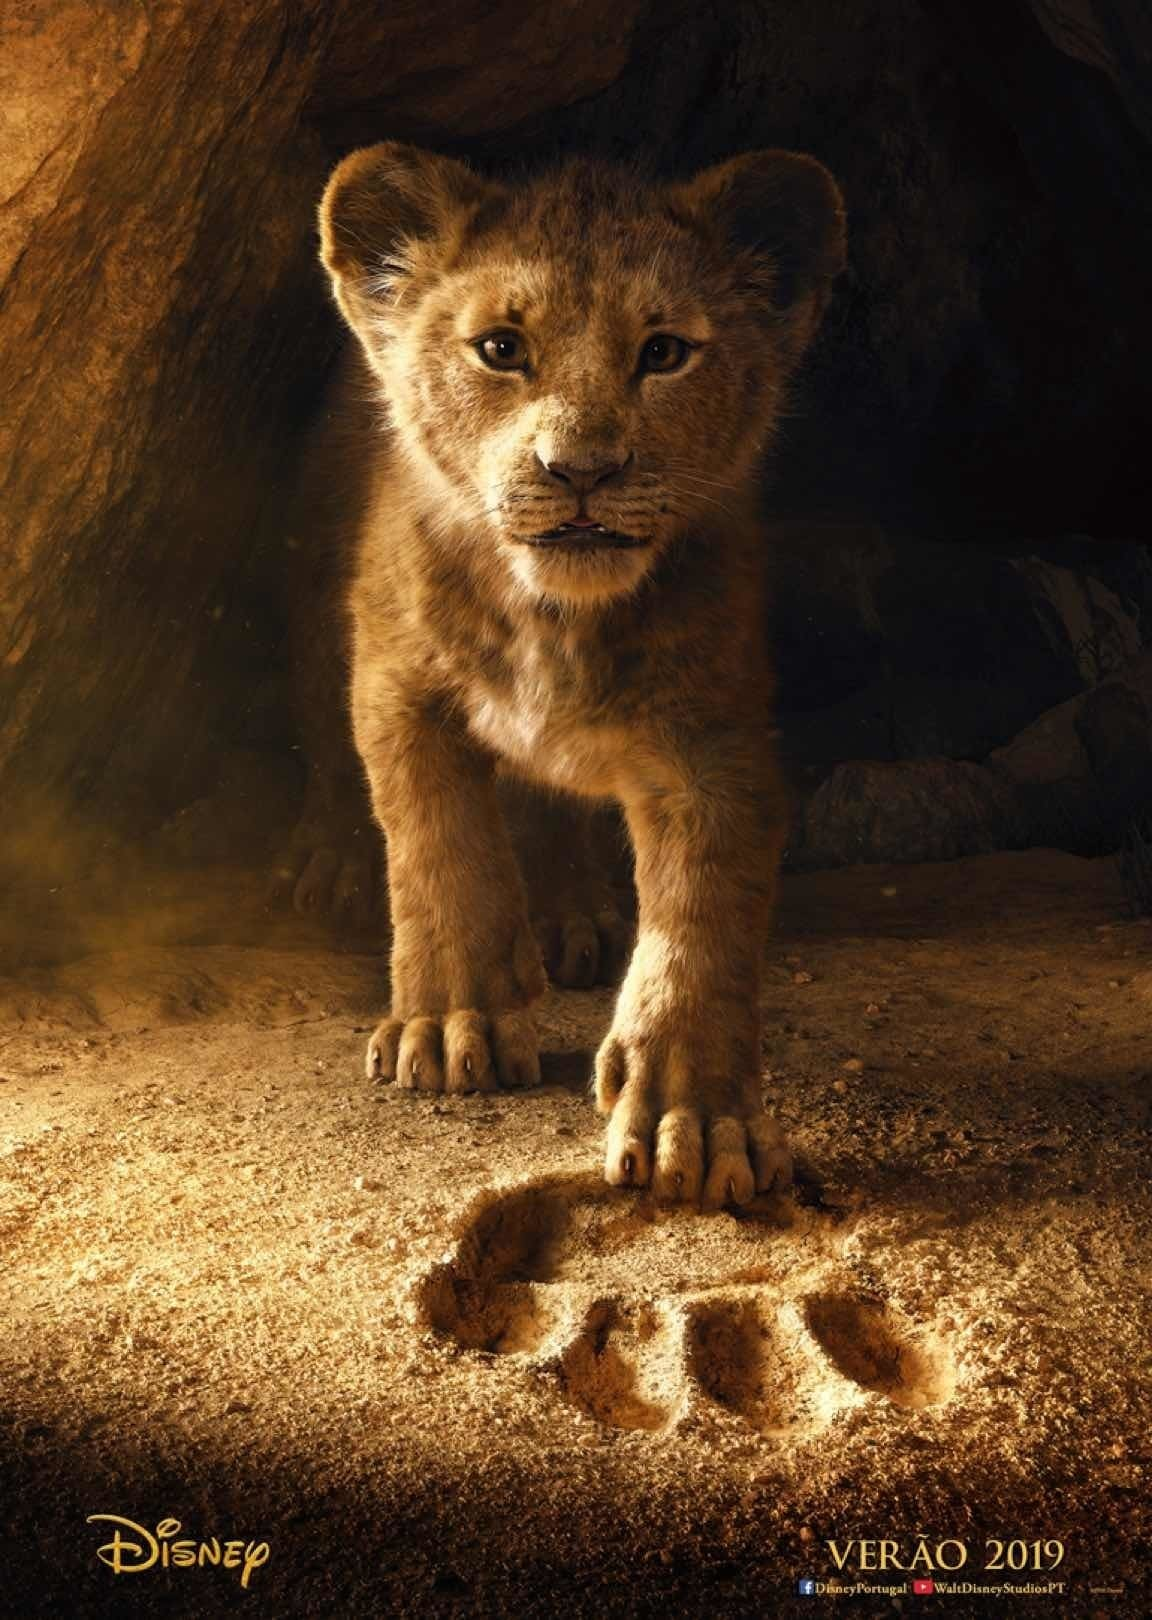 O Rei Leão (The Lion King) 2019 Poster